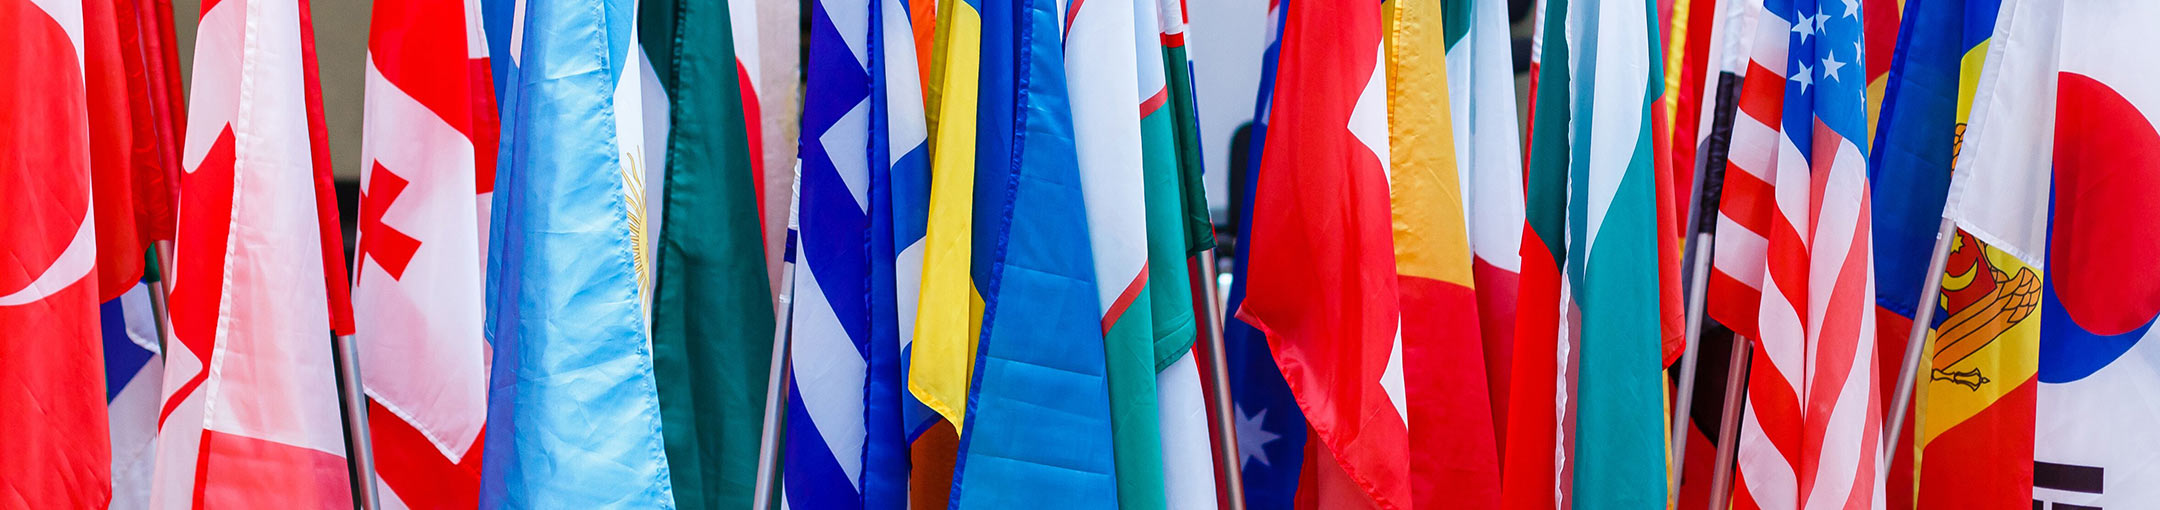 Photo of several colorful international flags in a row